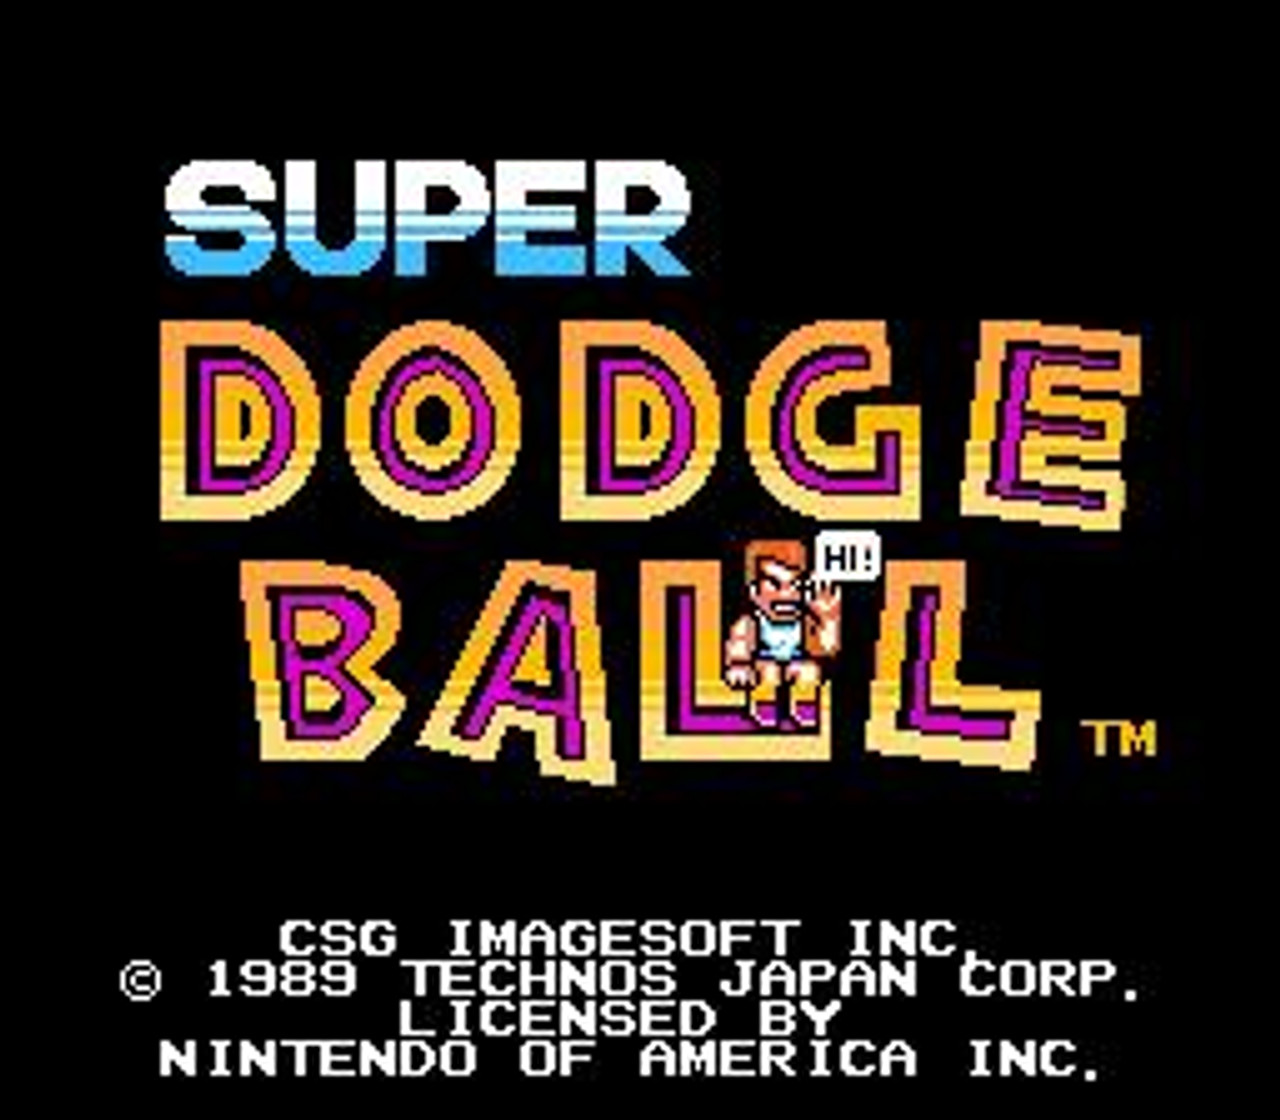 Nintendo NES Super Dodge Ball Video Game Cartridge [Played Condition]